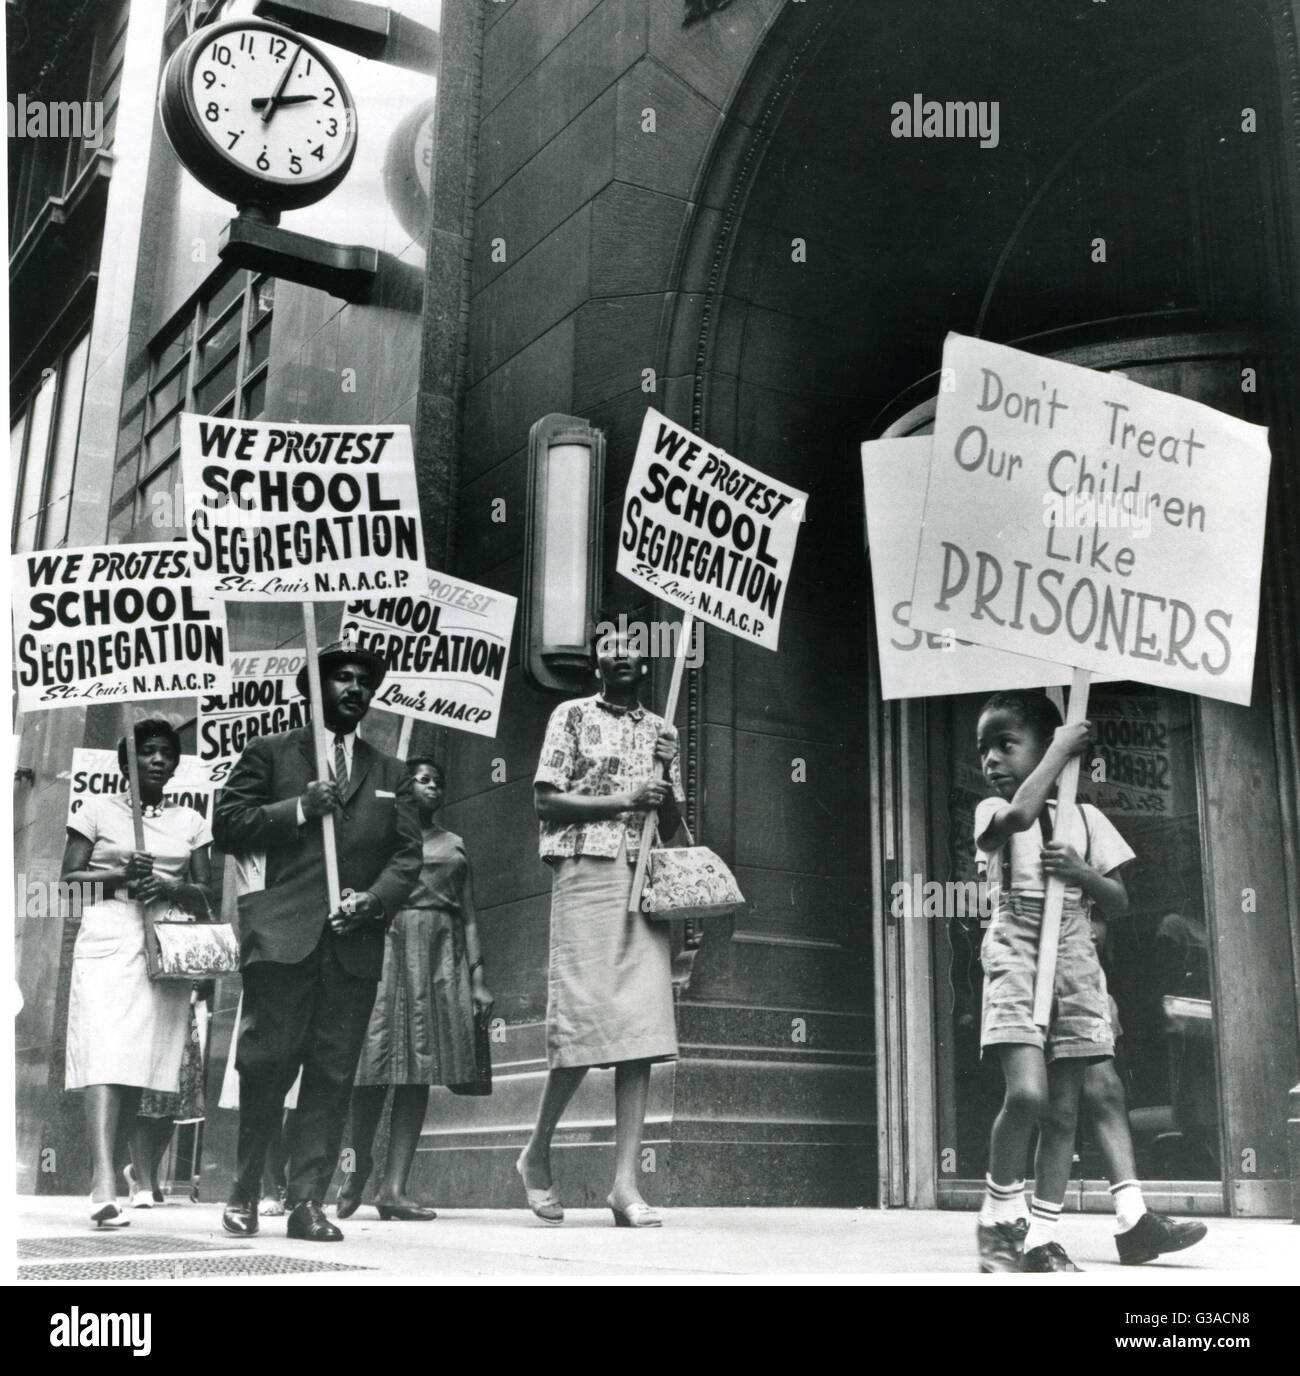 Demonstrators picket in front of a school board office protesting segregation of students. Part of a Picture Story Stock Photo